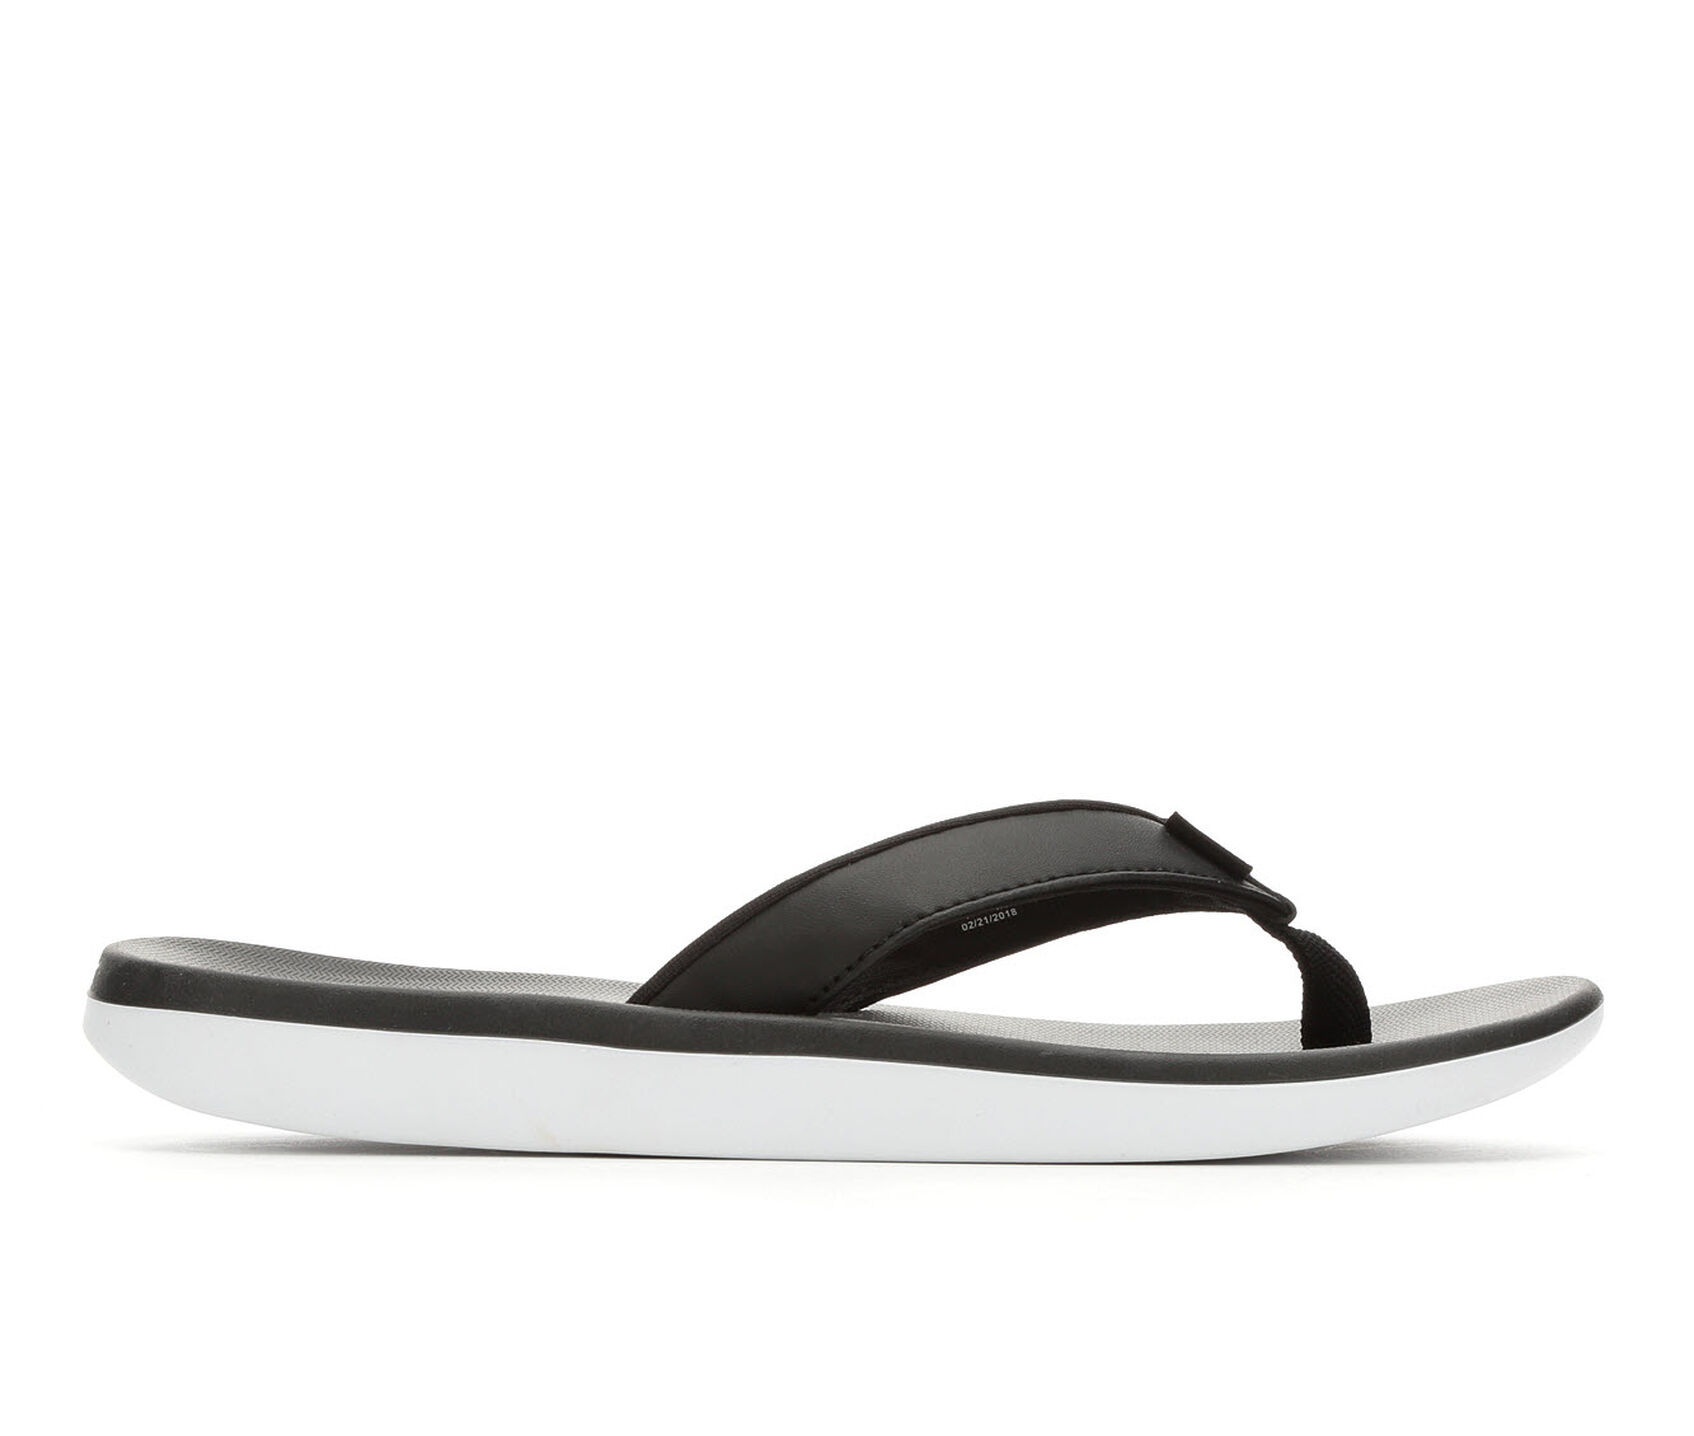 a72e0c468b5 ... Nike Bella Kai Thong Sport Sandals. Previous